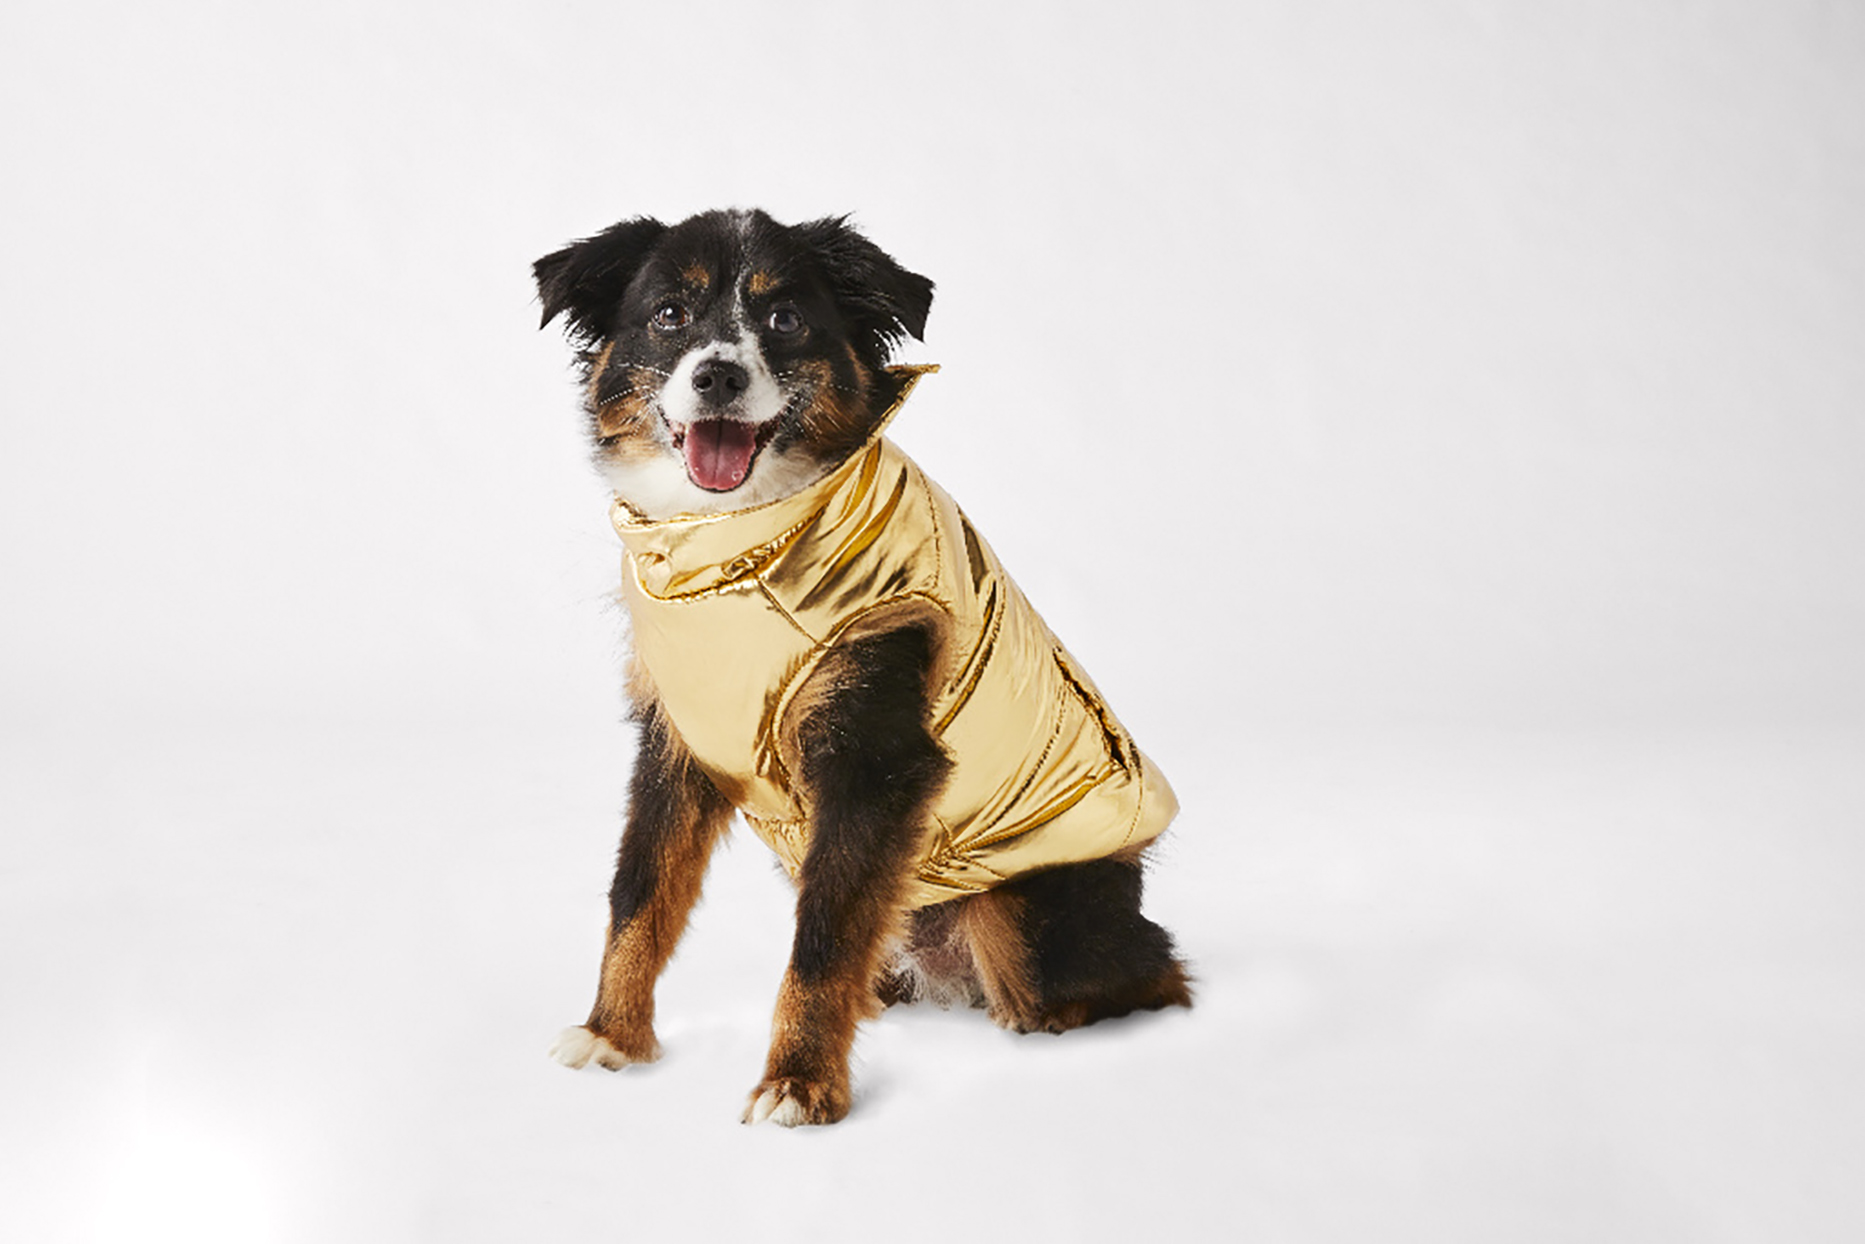 Fluffy black, brown and white colored dog with metallic gold coat